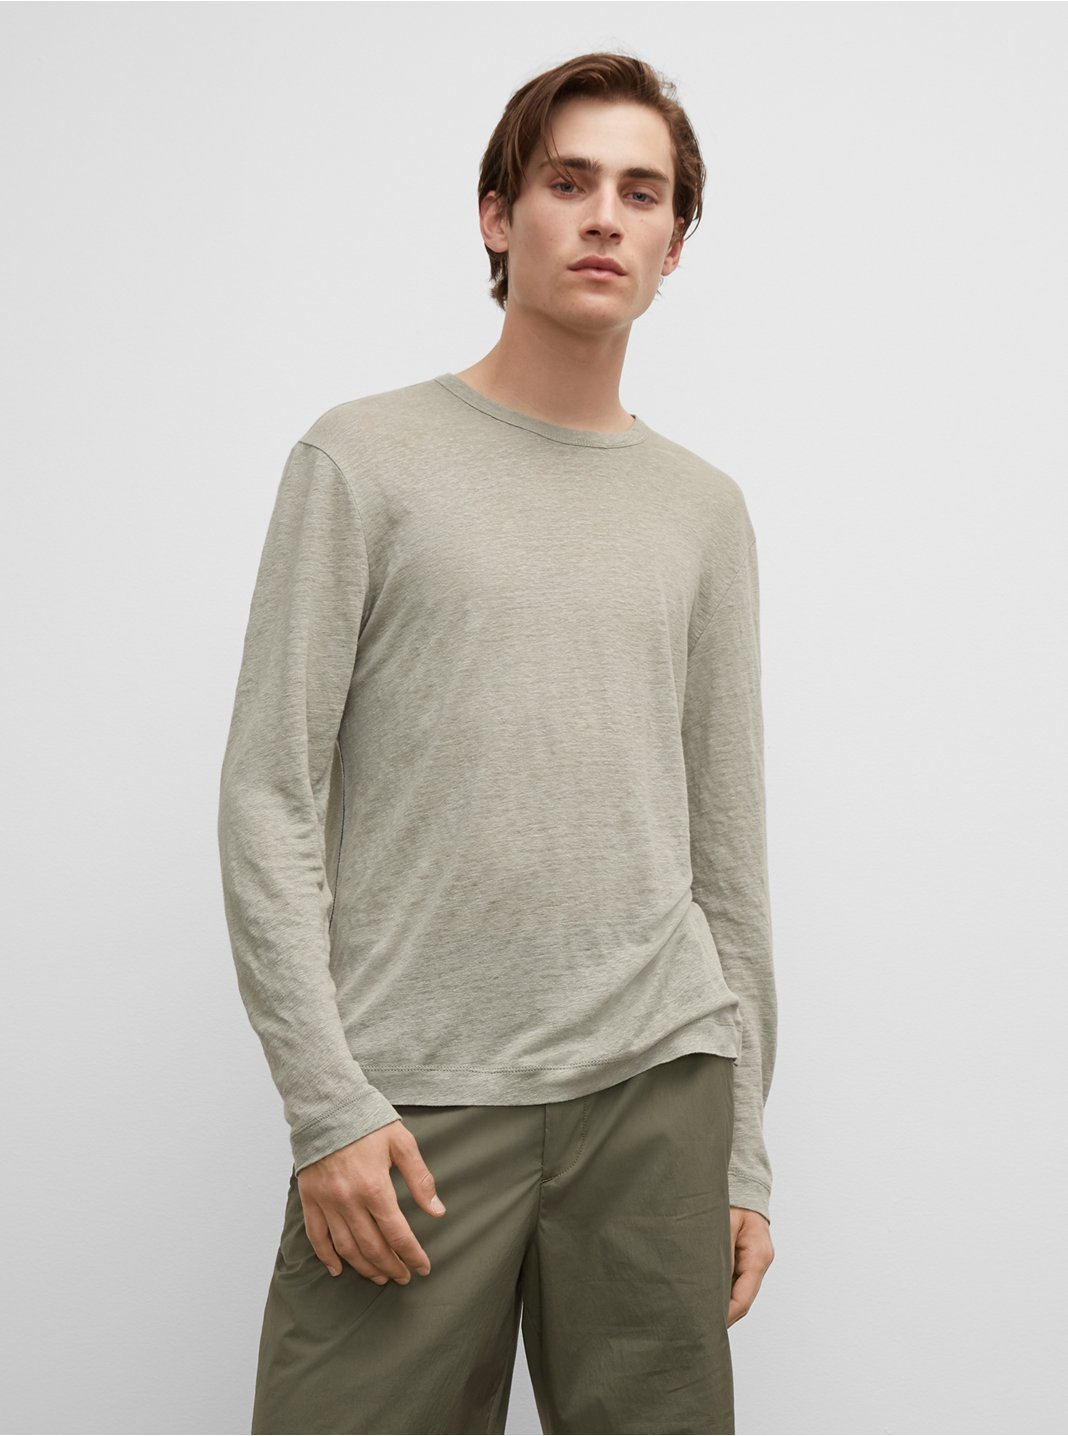 Long Sleeve Linen Crew